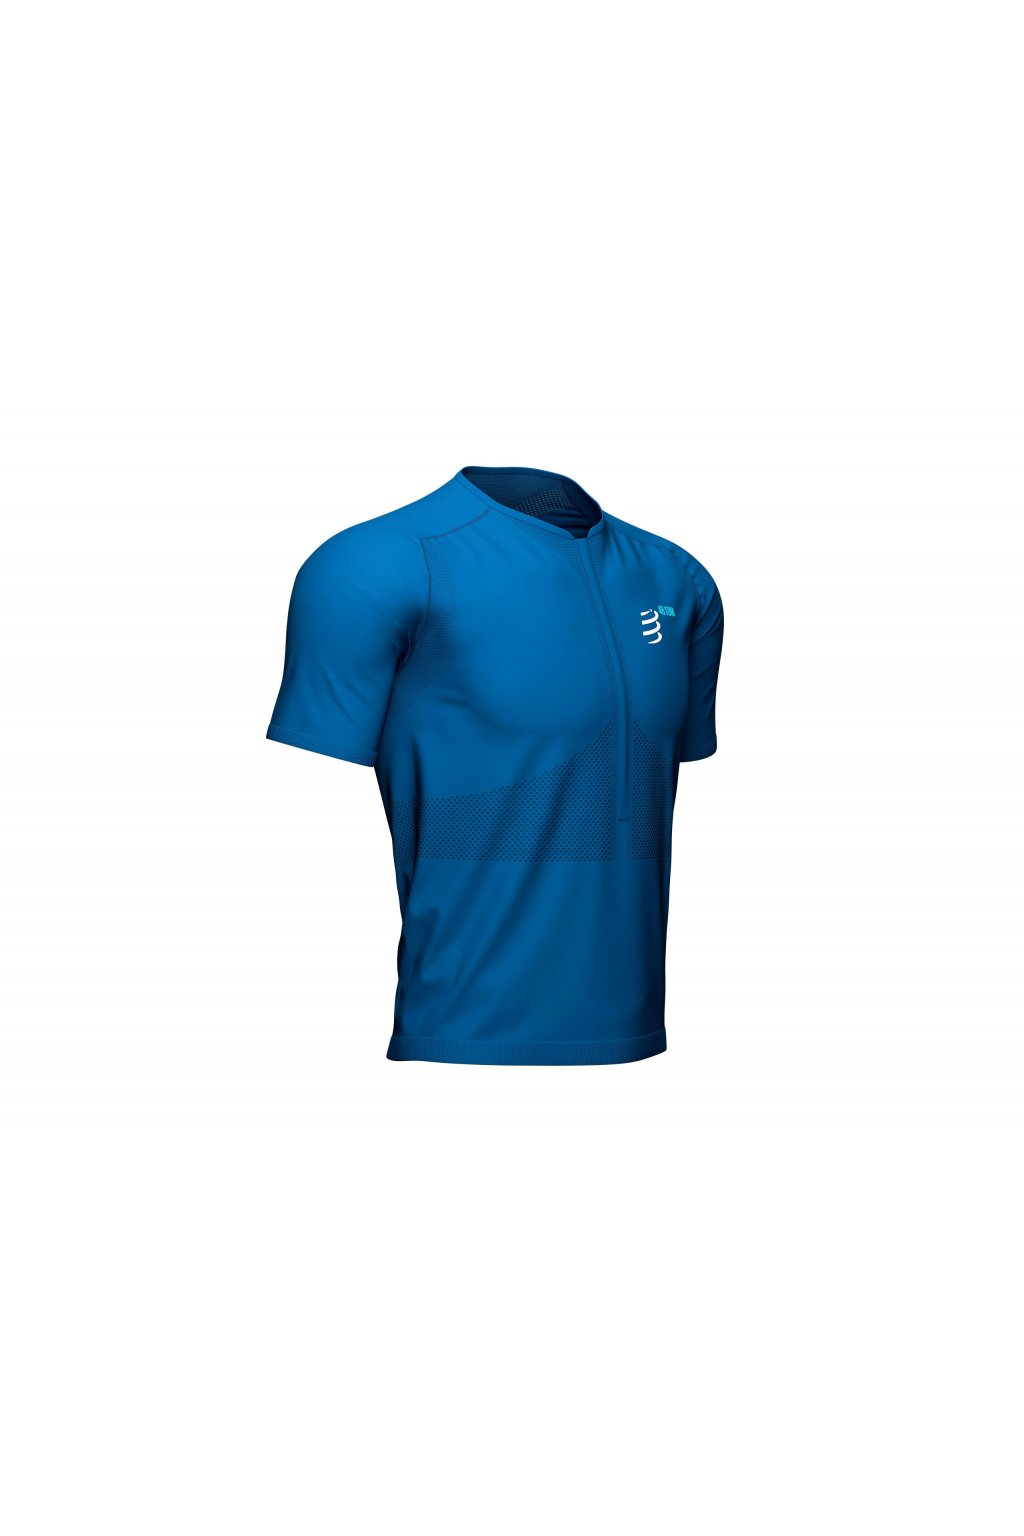 trail half zip fitted ss top mont blanc 2021